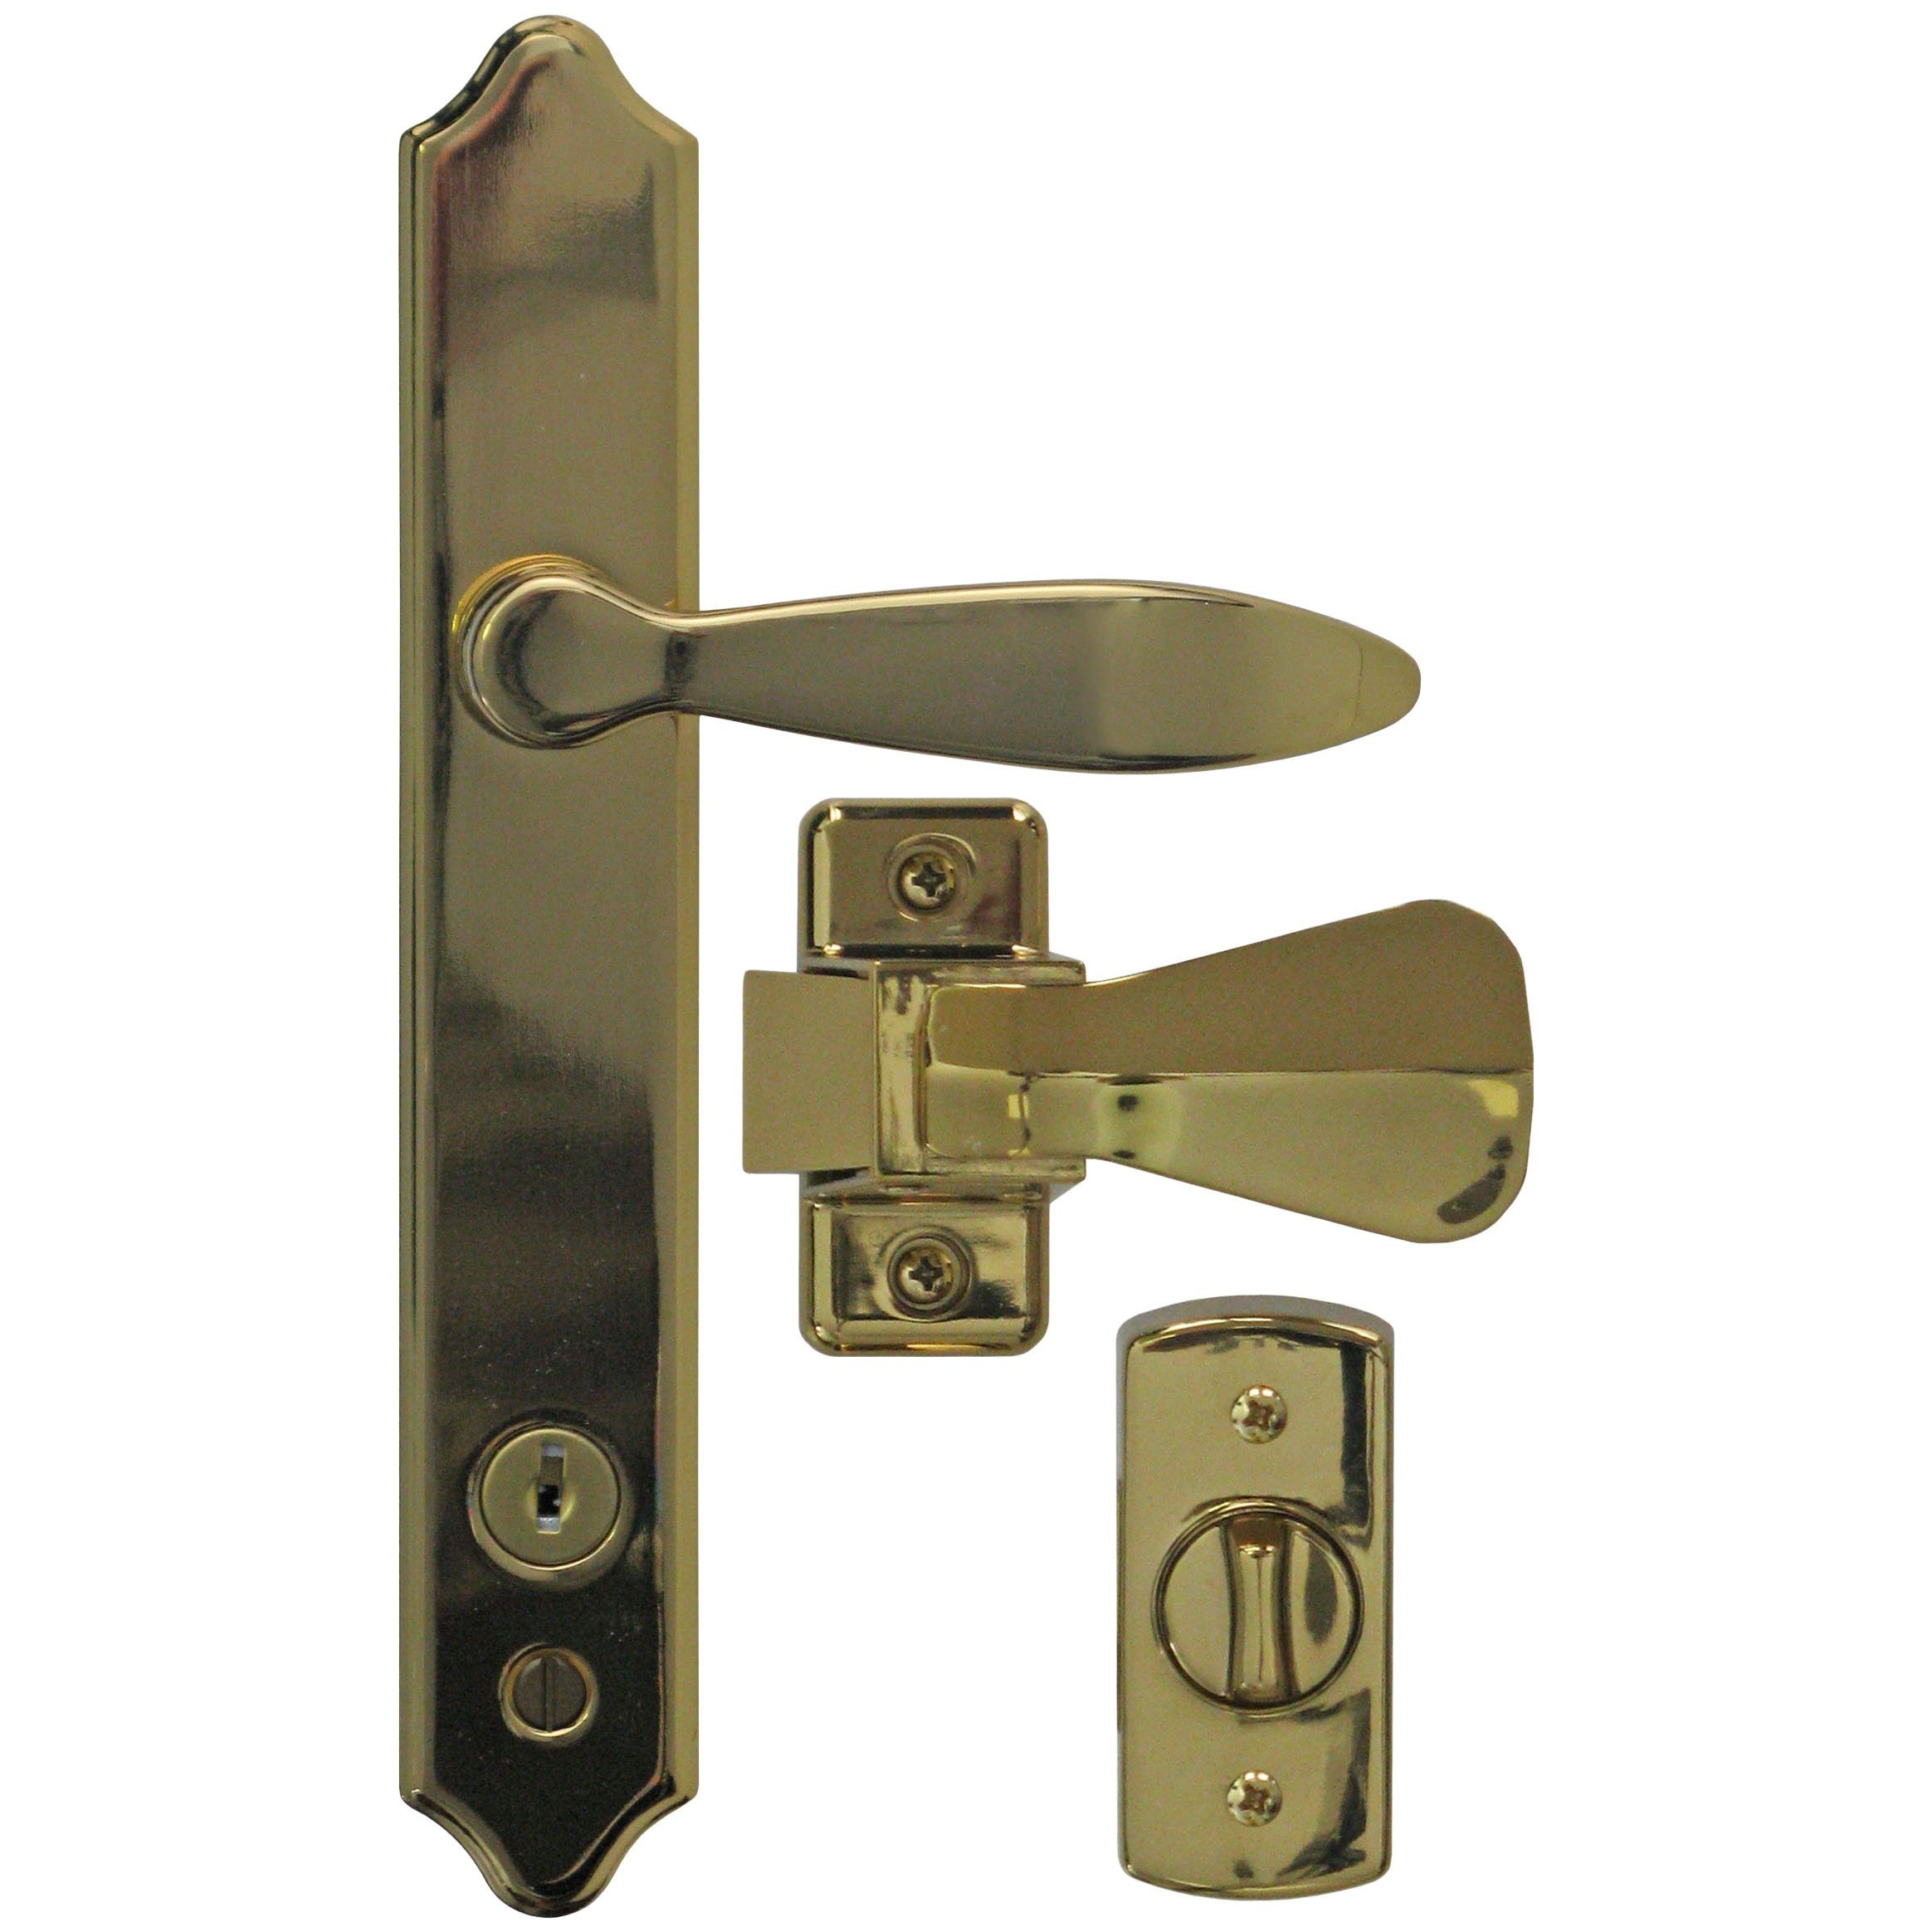 Ideal Security ML Lever Set for Storm and Screen Doors With Keyed Deadbolt Brass E-coat